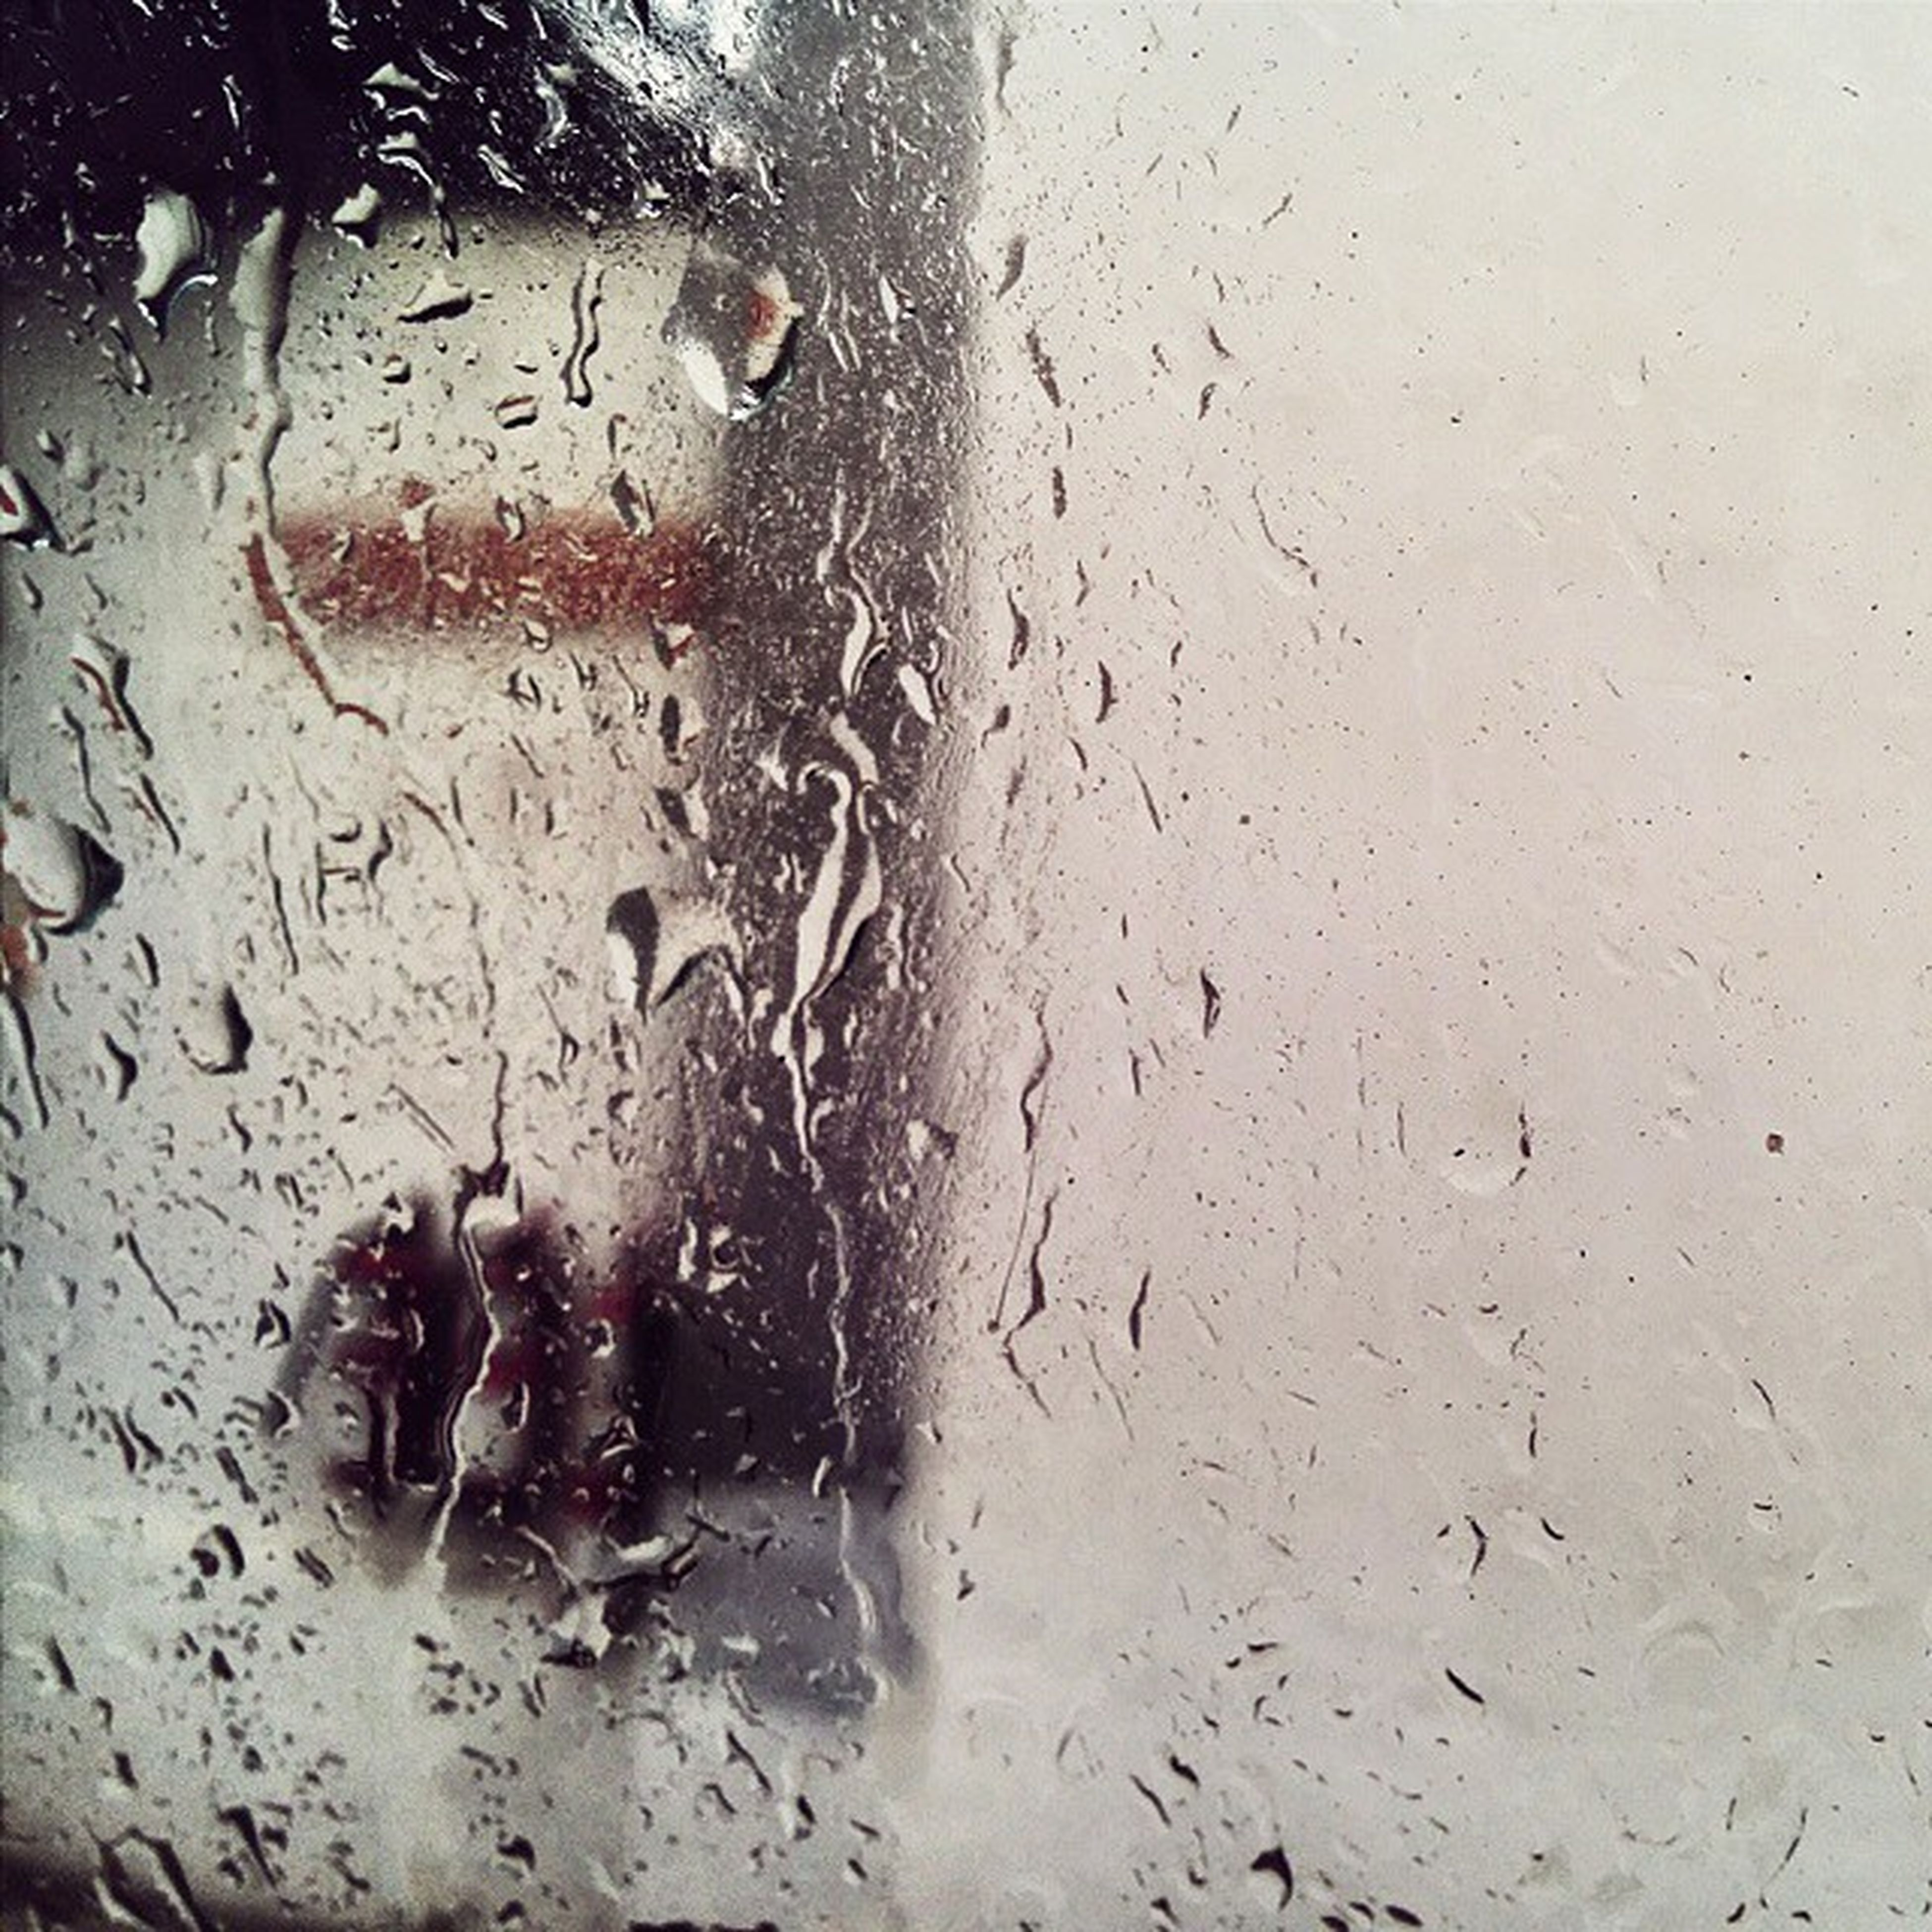 drop, wet, window, rain, water, transparent, glass - material, indoors, raindrop, weather, season, glass, full frame, close-up, focus on foreground, monsoon, backgrounds, water drop, droplet, condensation